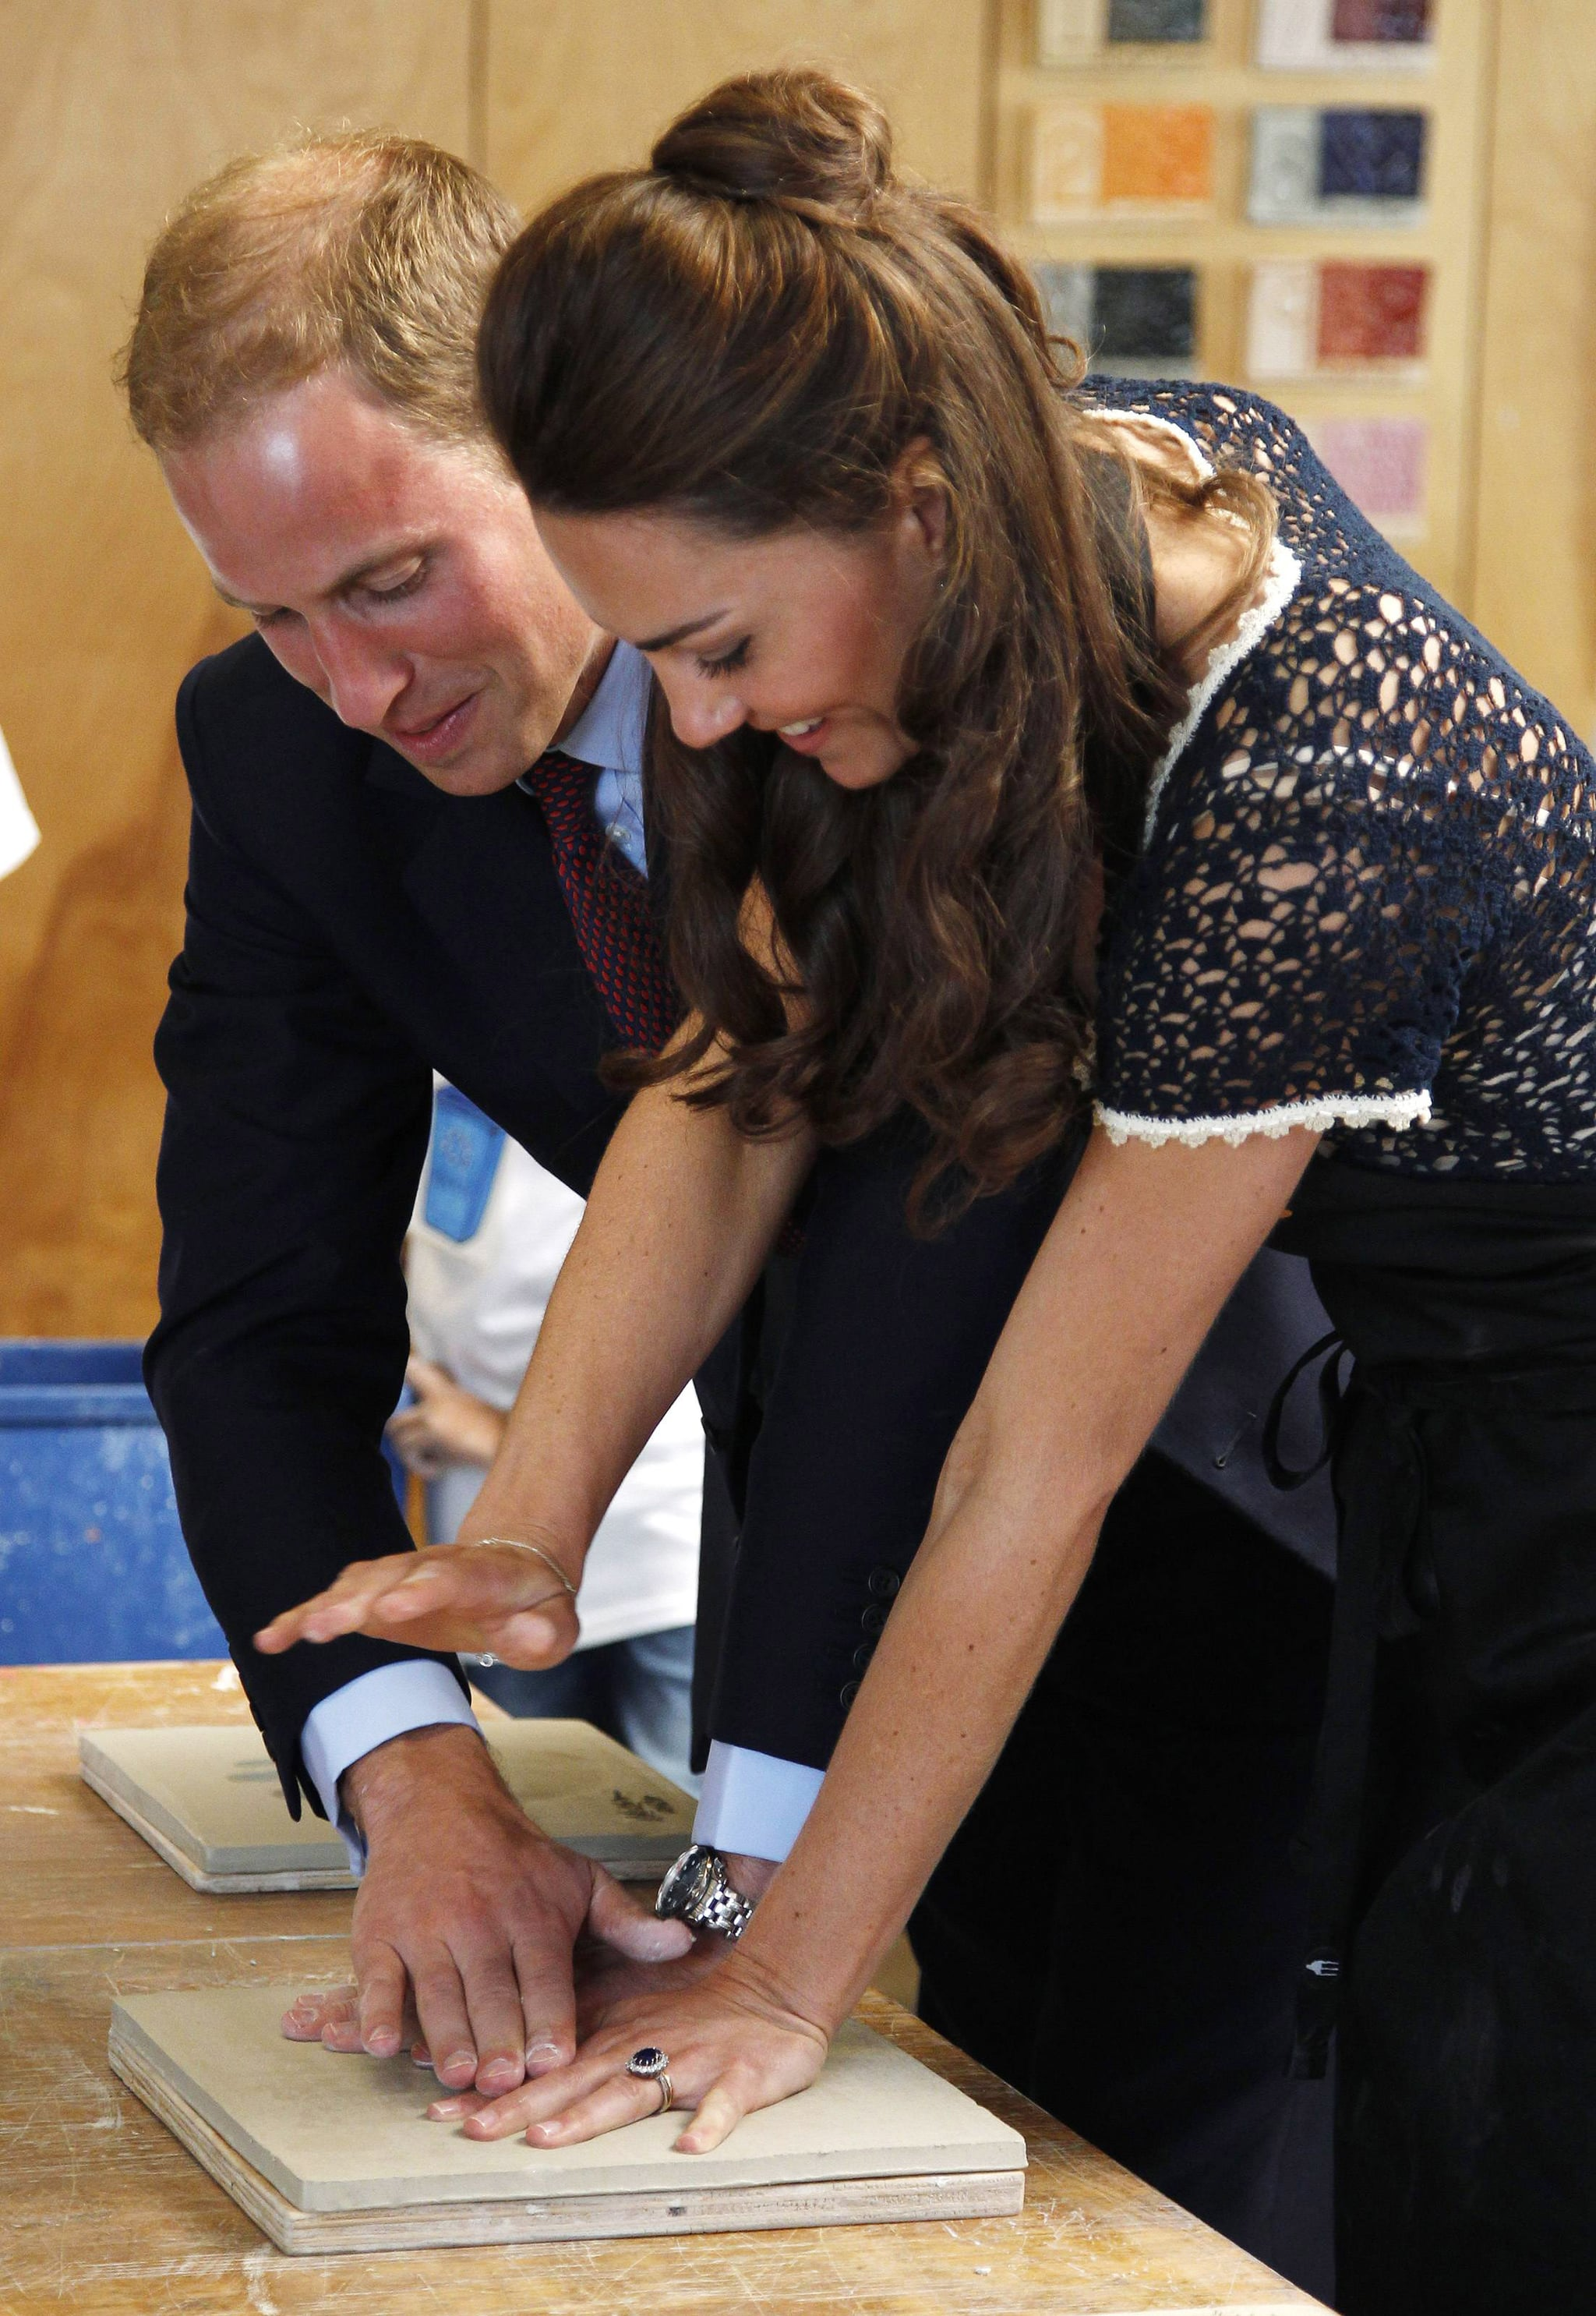 Kate Middleton and Prince William making hand prints in LA.